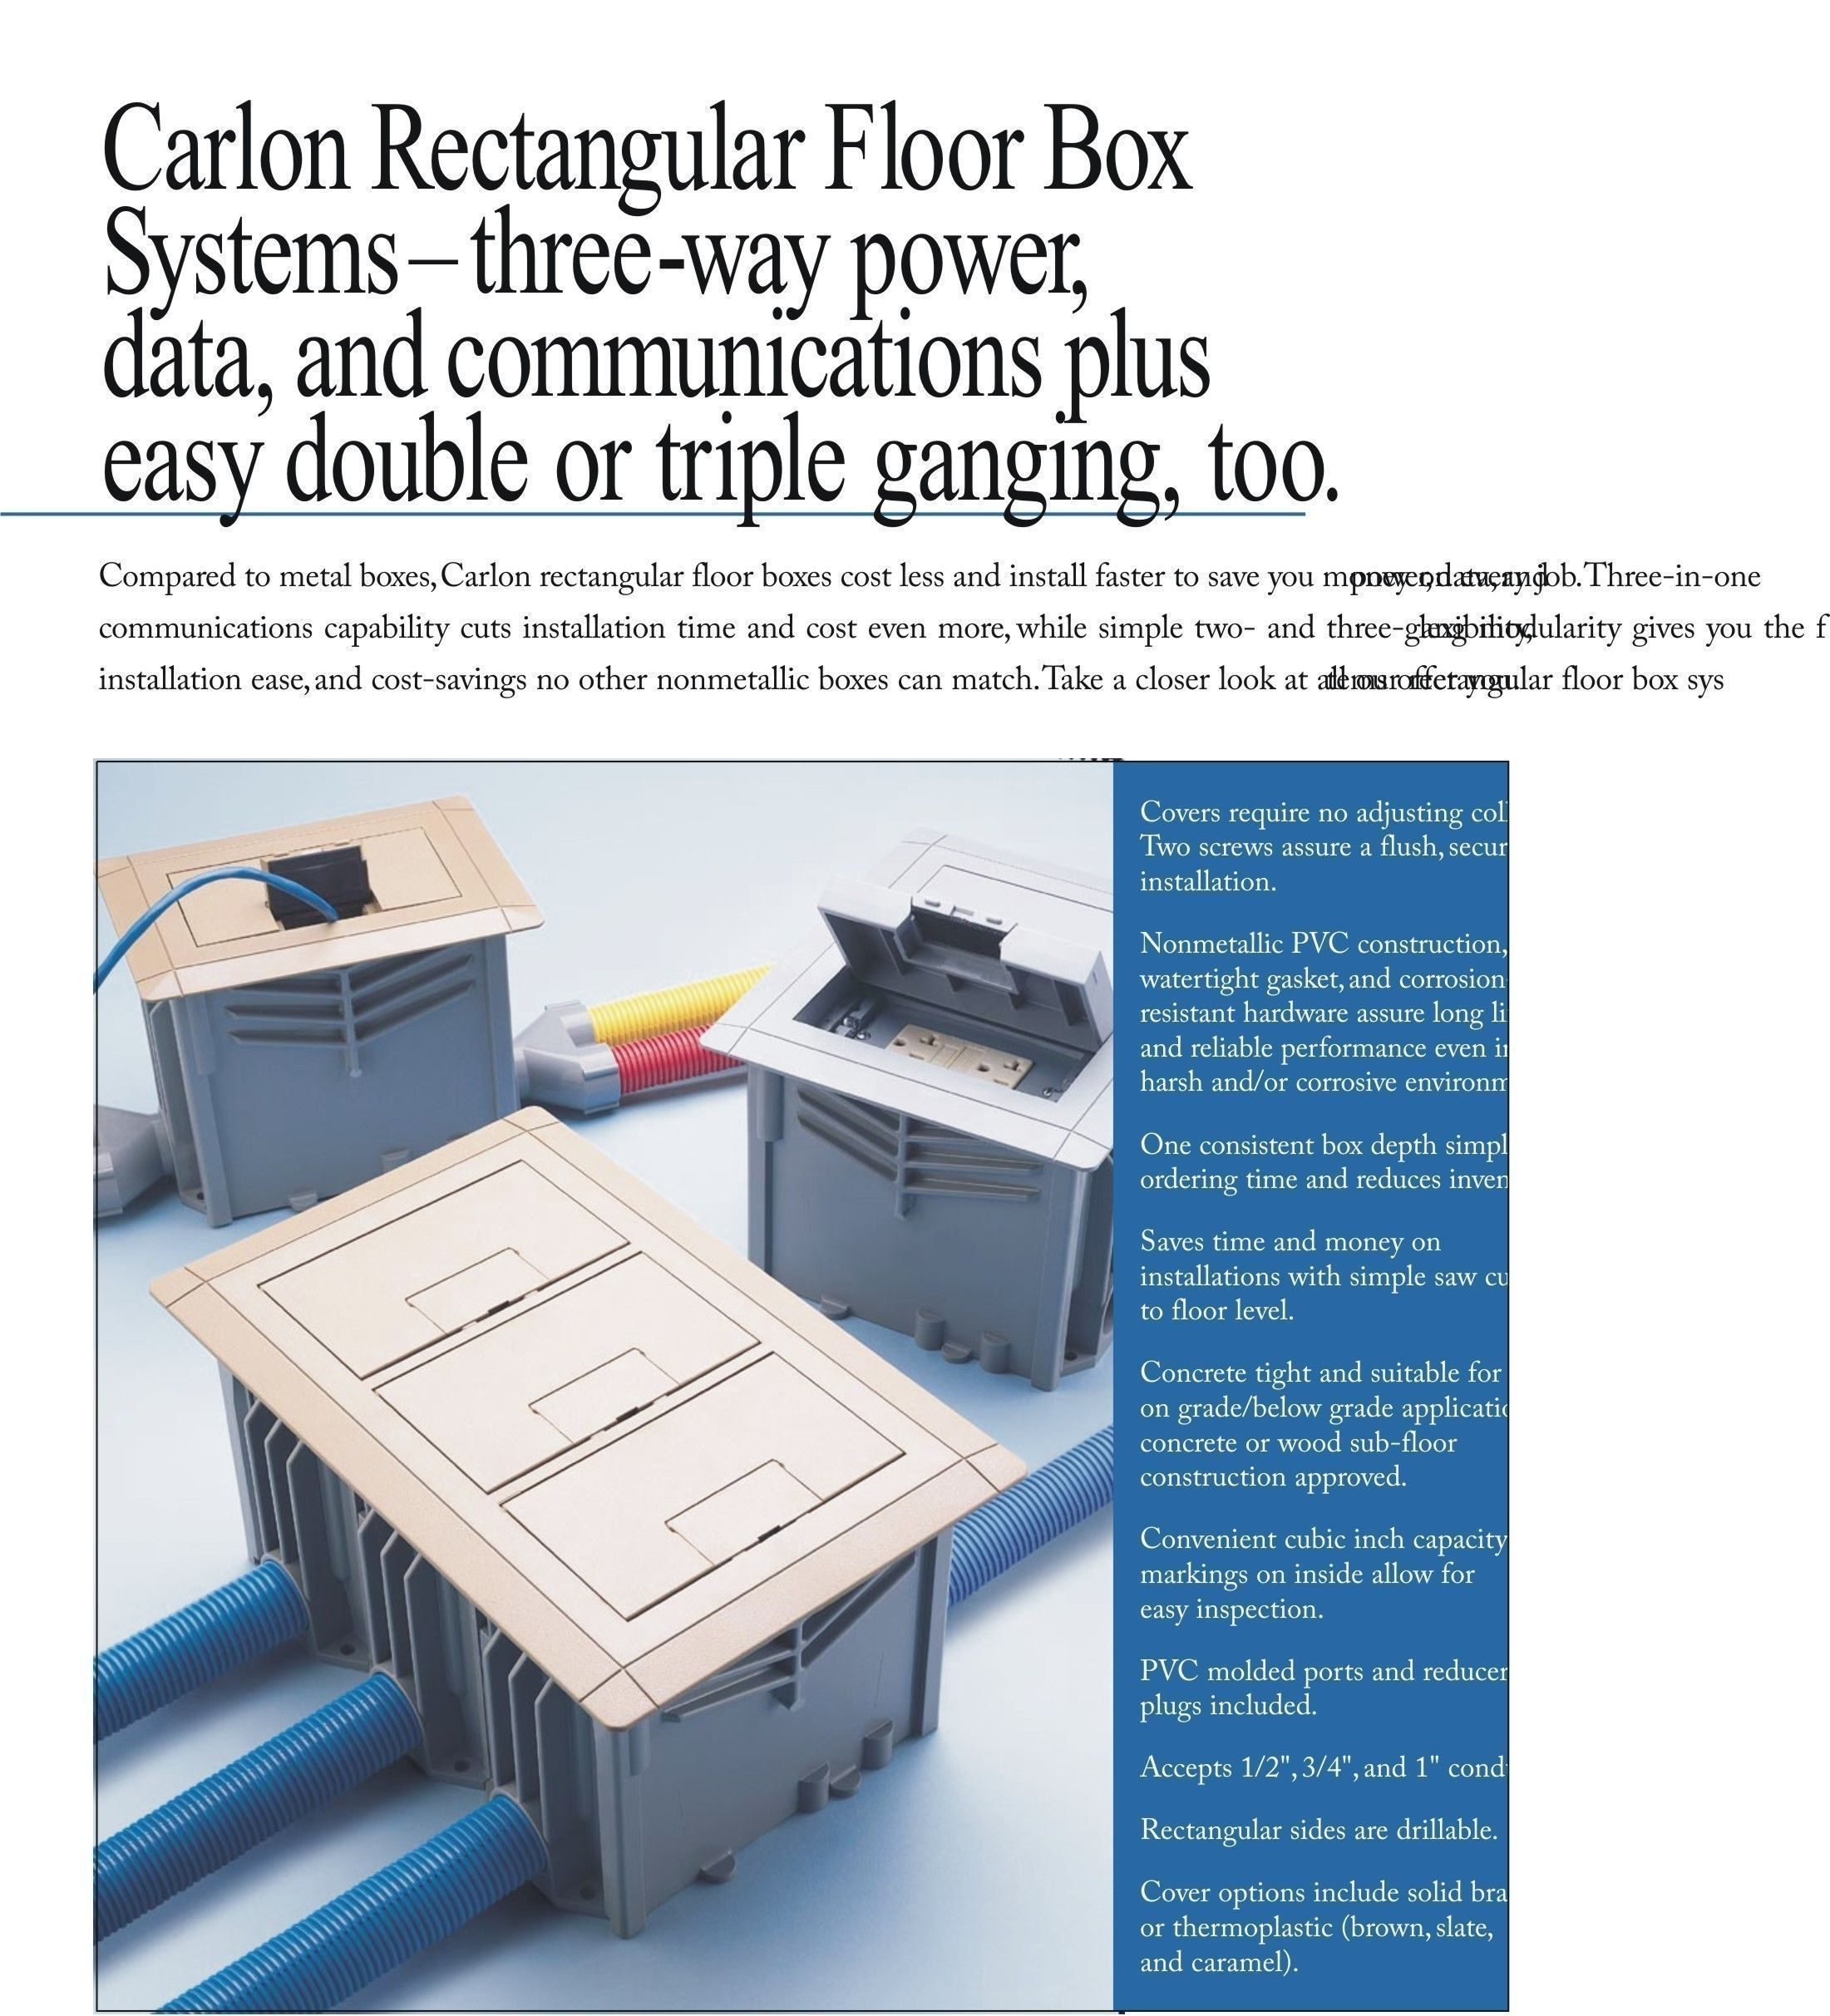 APC E976RFB (3 Pack) Floor Boxes Sold Only In A 3 Pack For $329.90 Complete  With Devices.